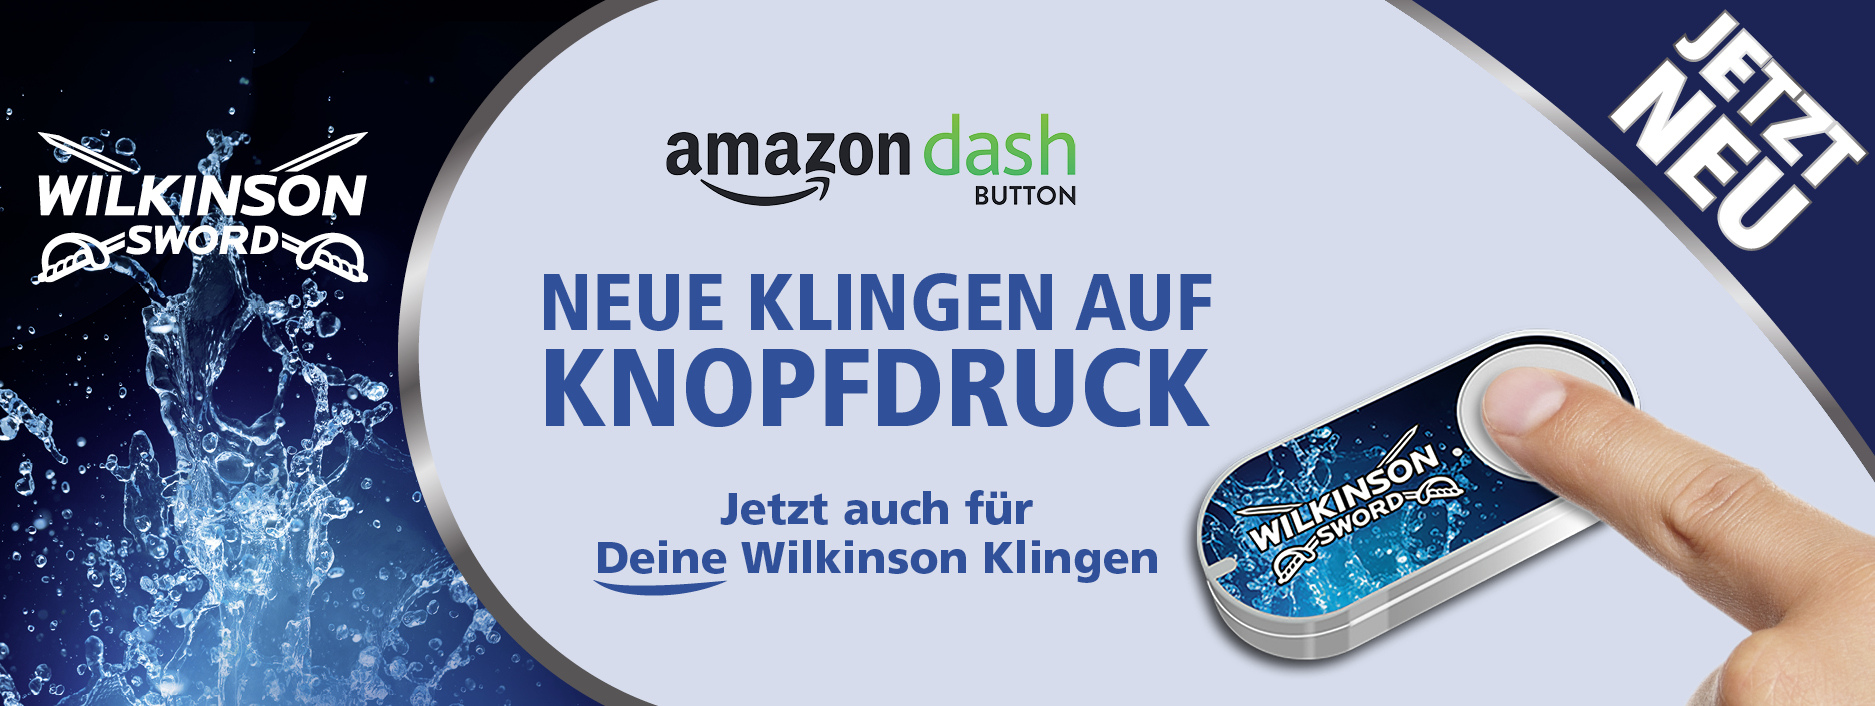 Amazon Dash Button von Wilkinson